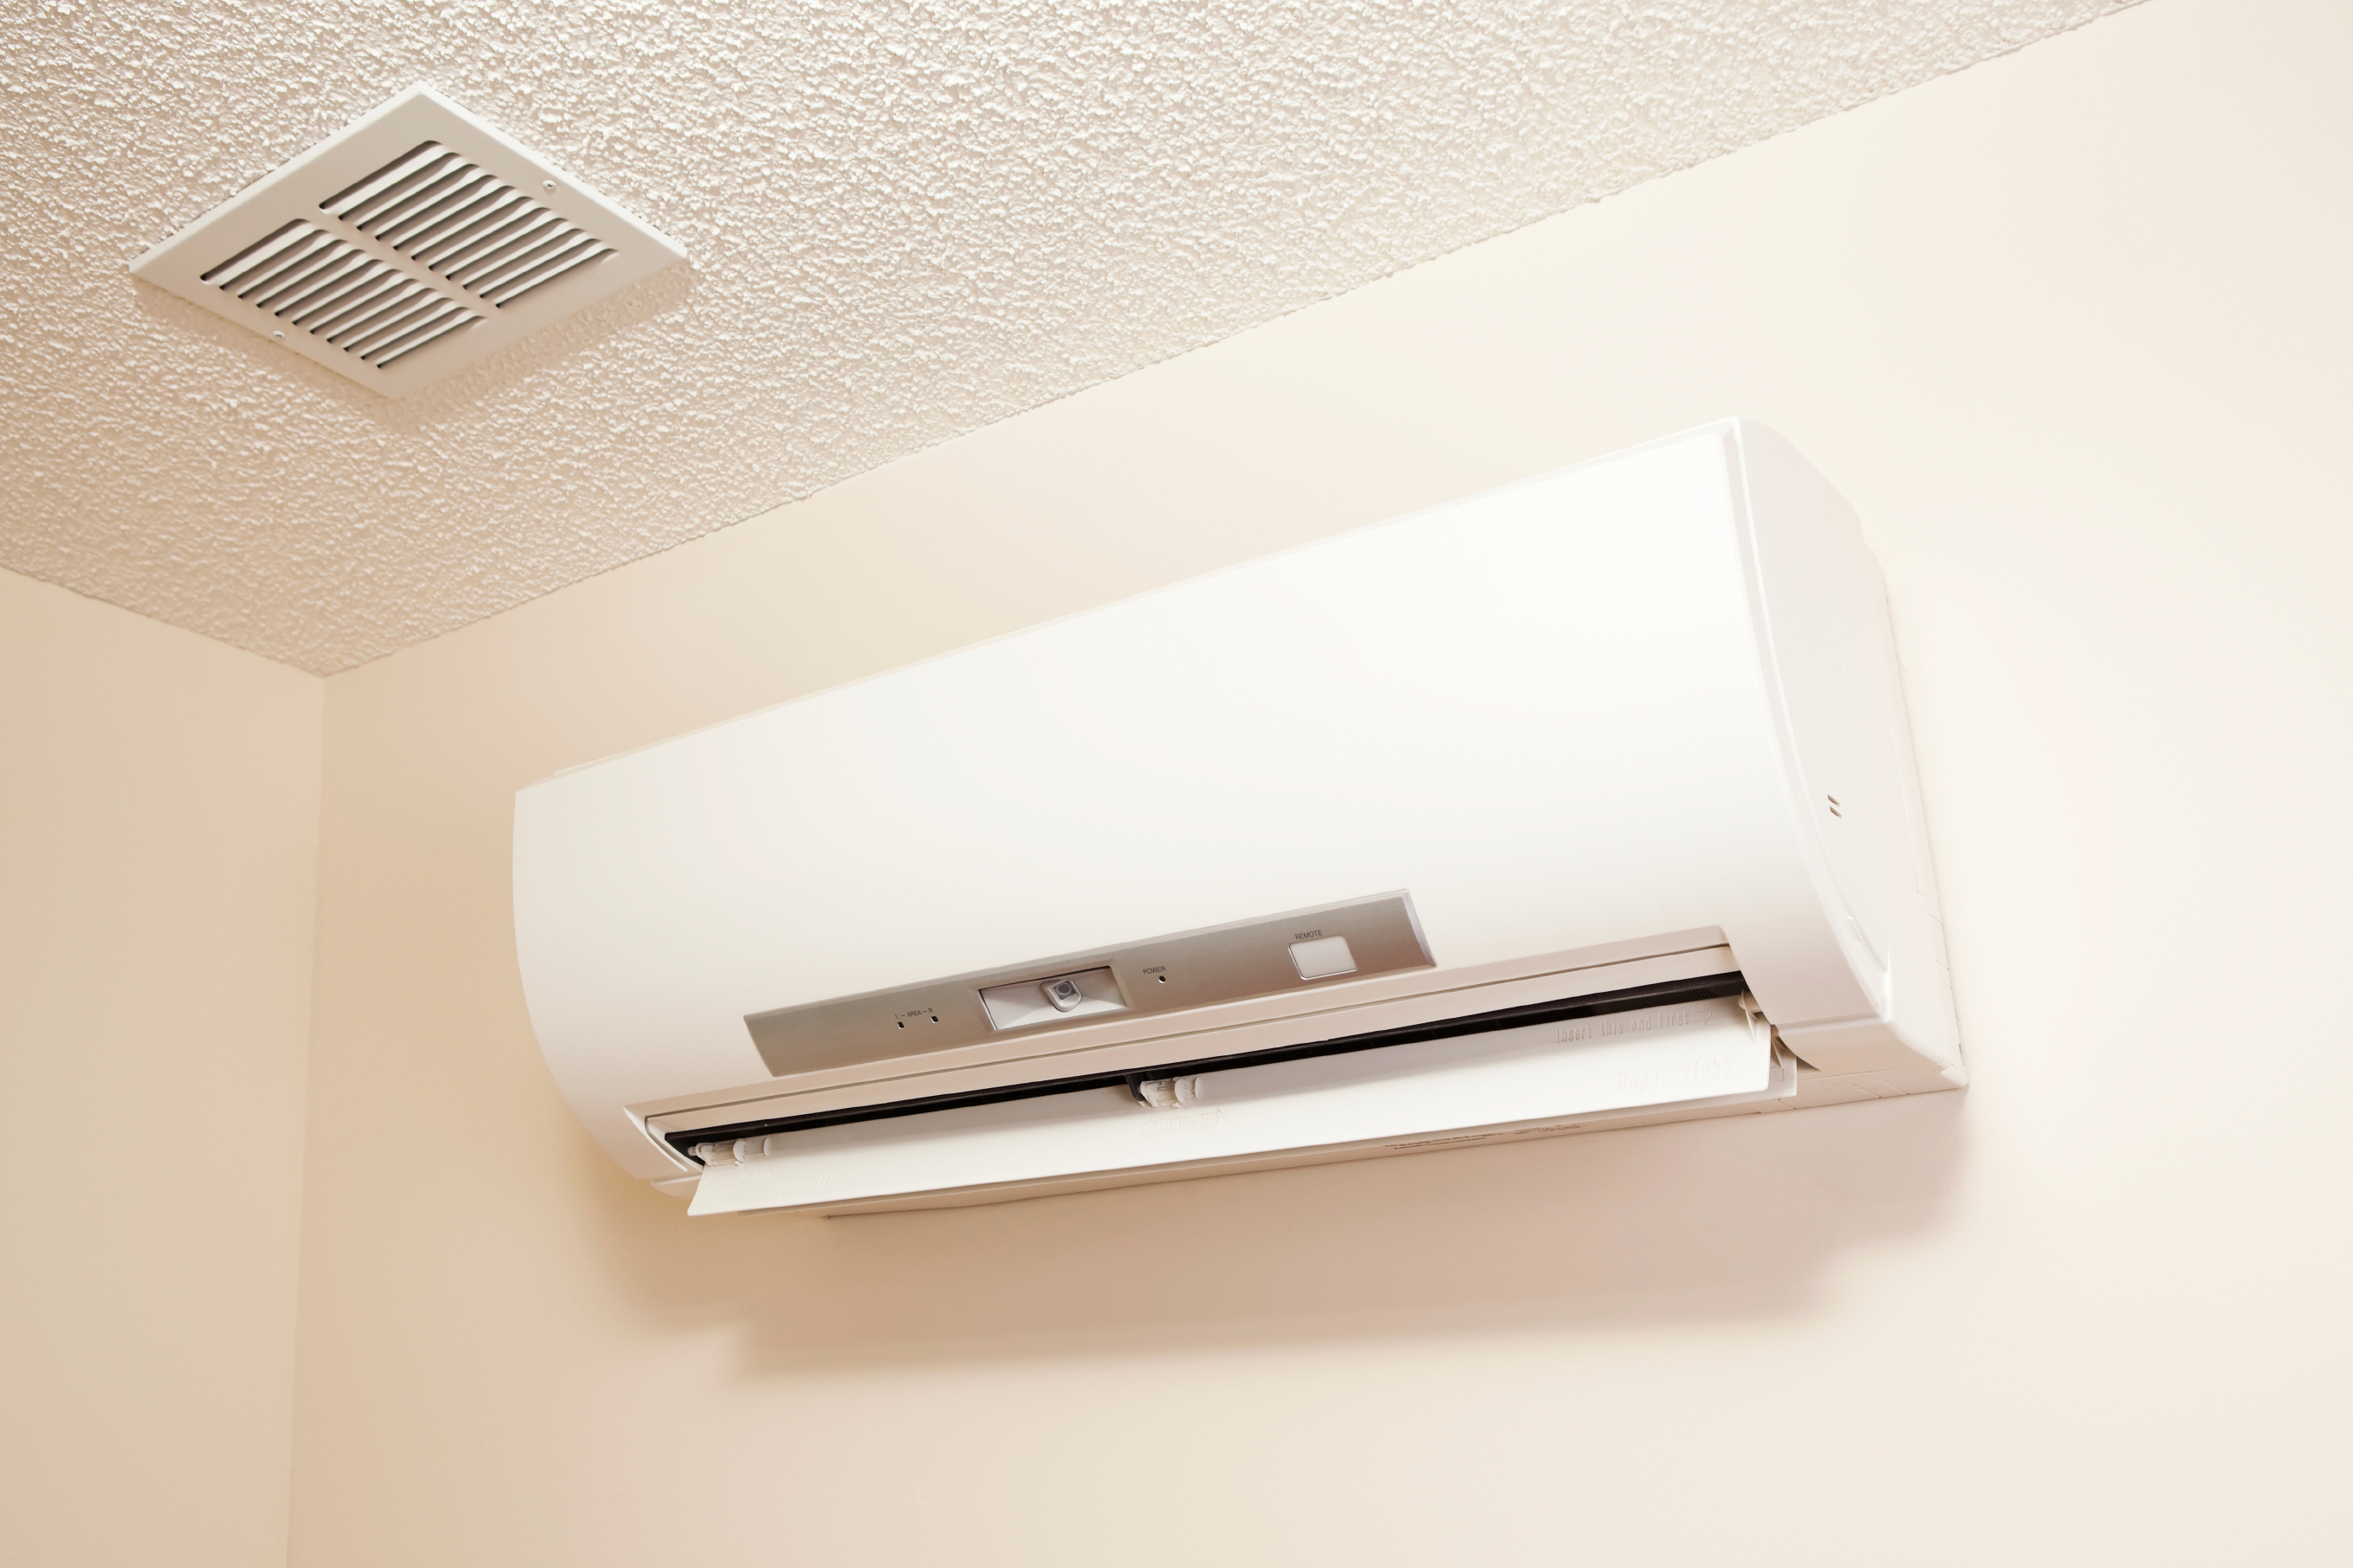 Ductless Heating System Not Working Let S Take A Look